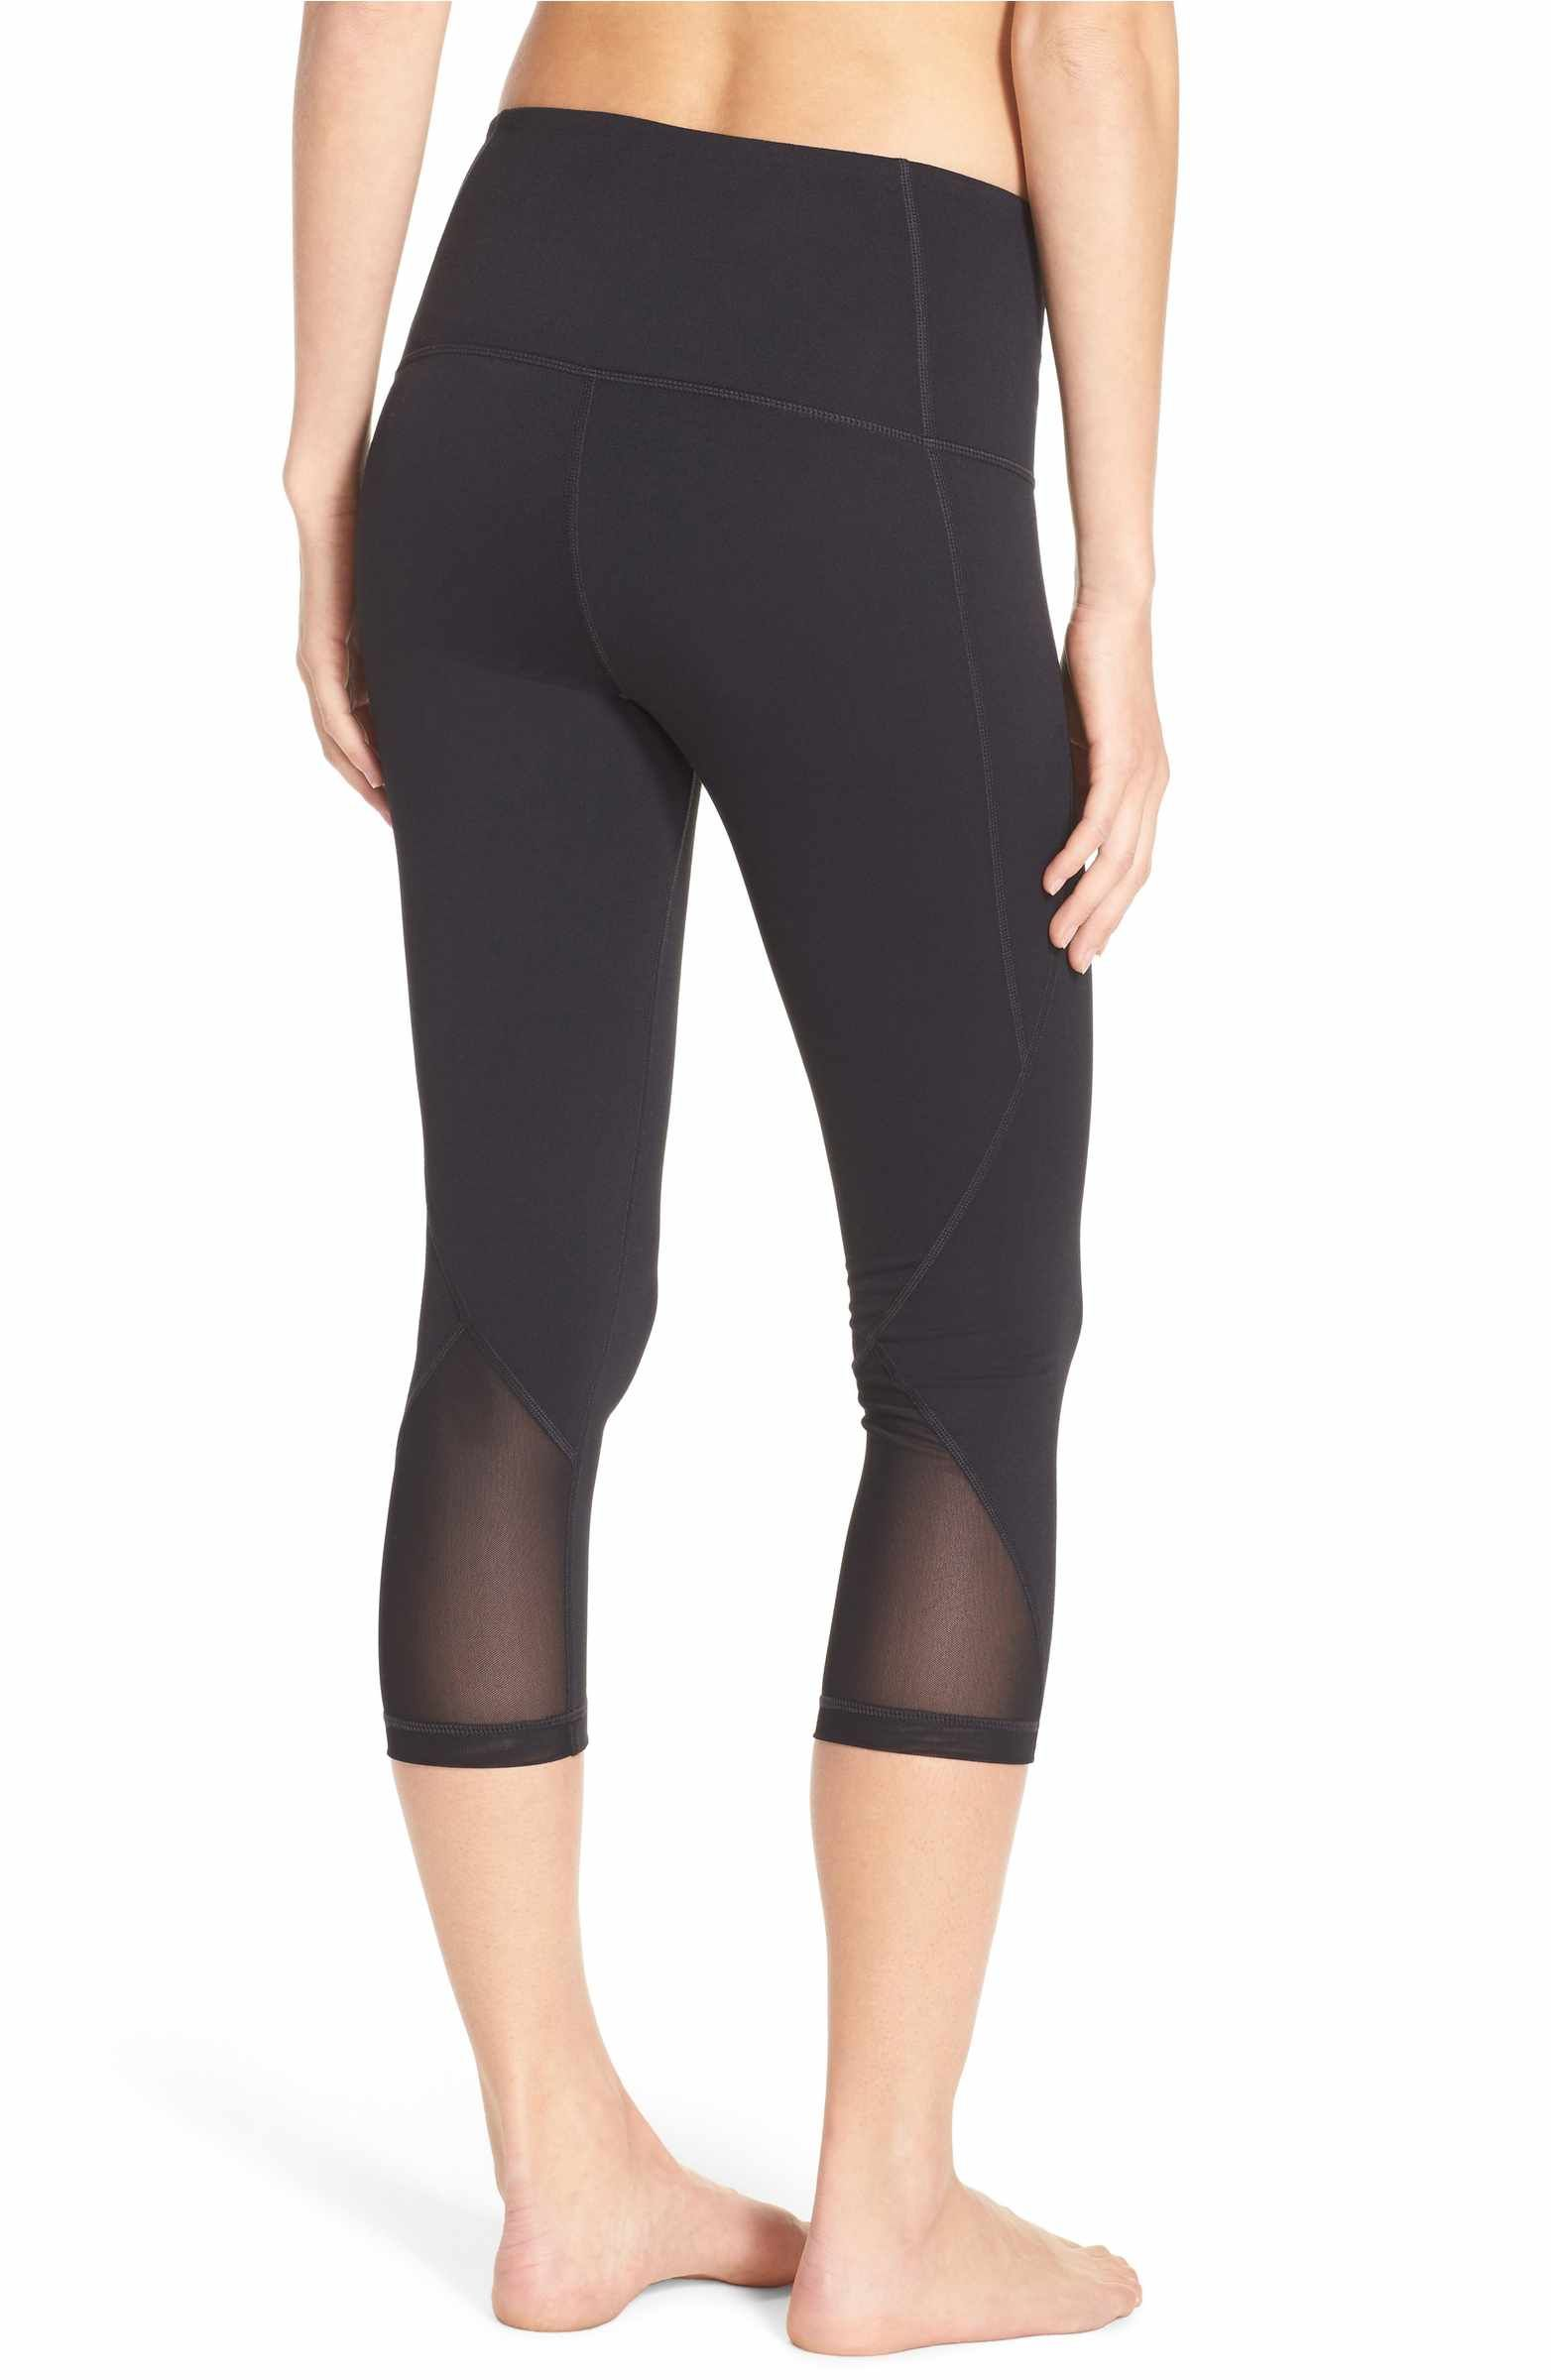 e8808fbe0f Free shipping and returns on Zella 'Hatha' High Waist Crop Leggings at  Nordstrom.com. Breezy mesh panels ventilate snug moisture-wicking Zeltek  leggings ...